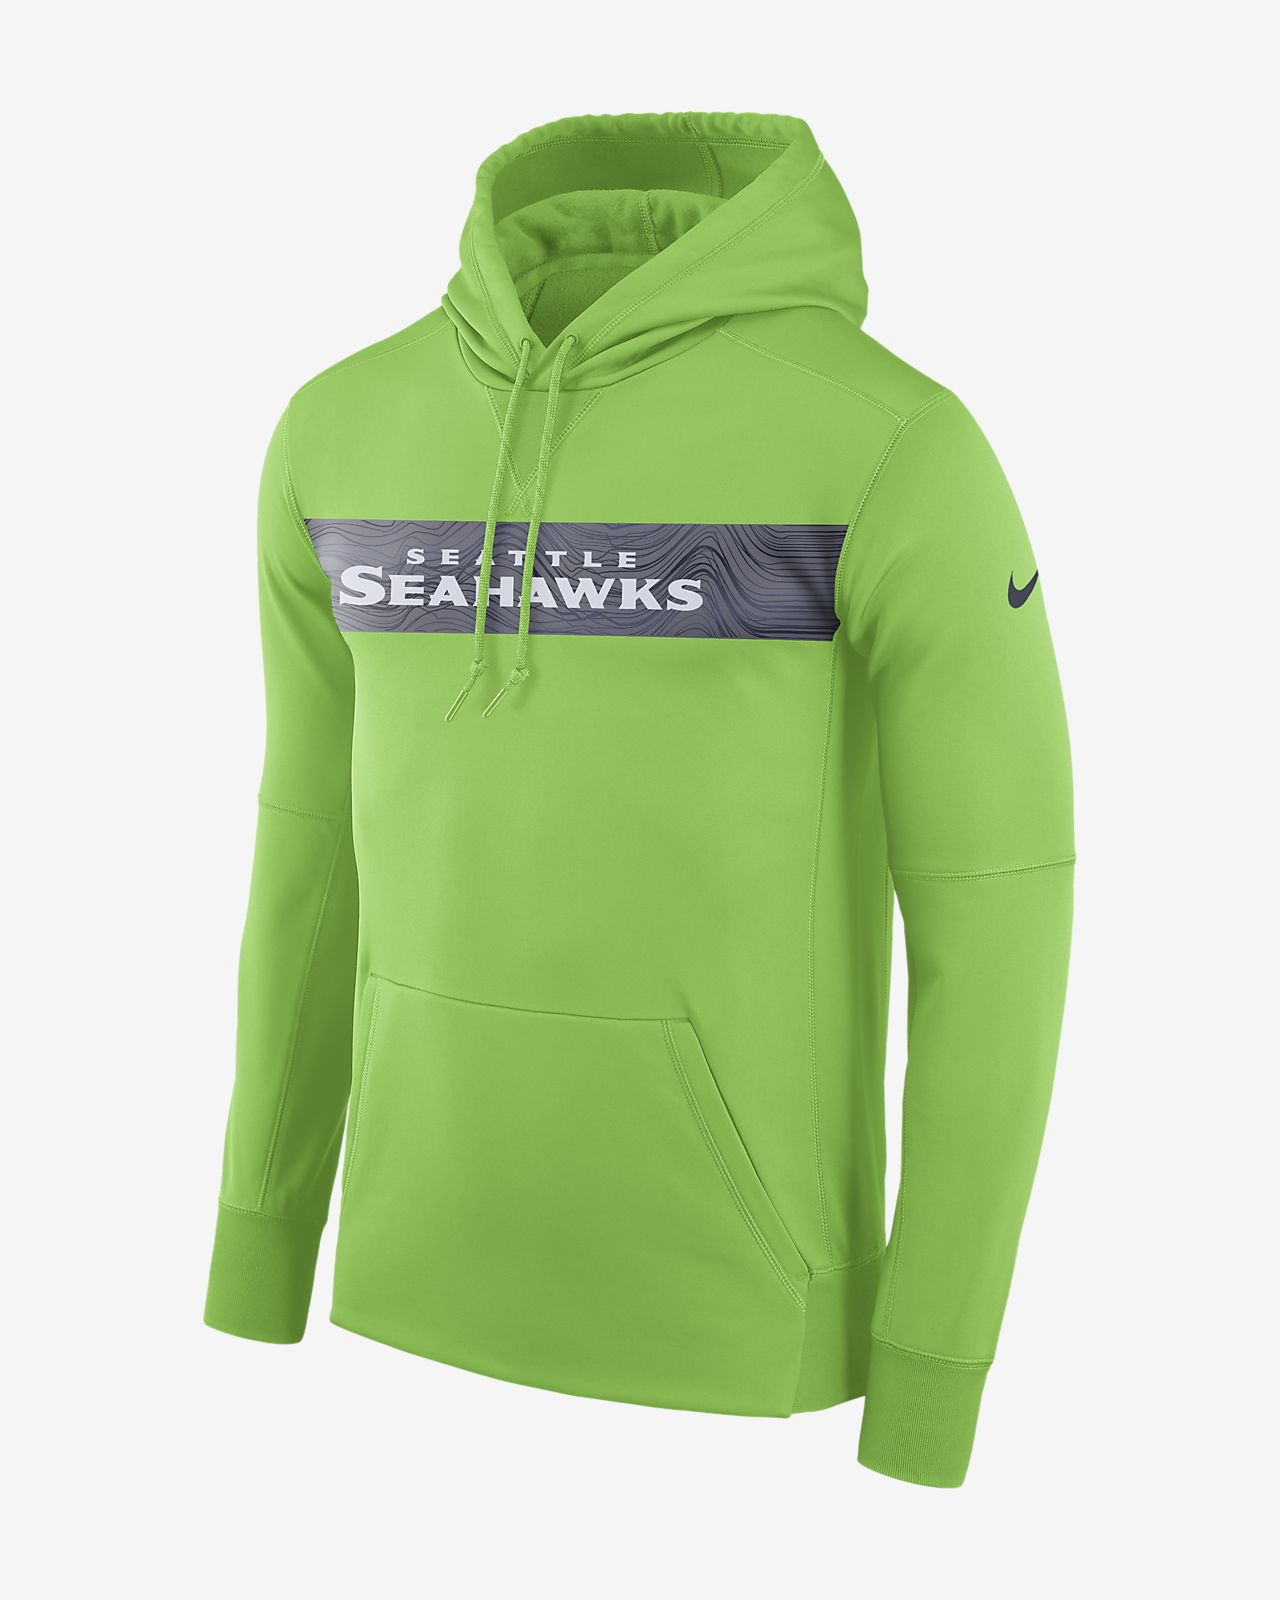 443e117440 Nike Dri-FIT Therma (NFL Seahawks) Men's Pullover Hoodie